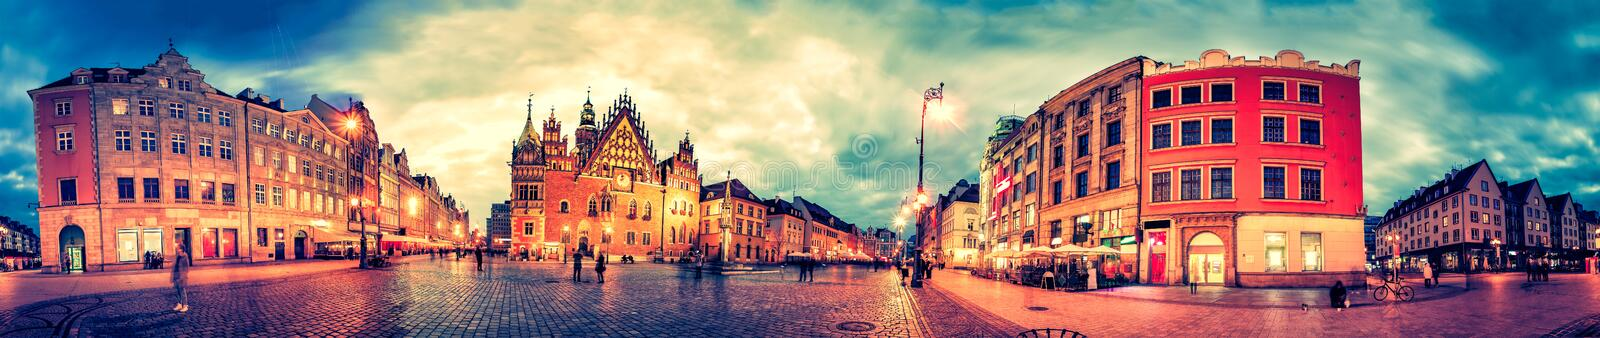 Wroclaw Market Square with Town Hall during sunset evening, Poland, Europe royalty free stock photos